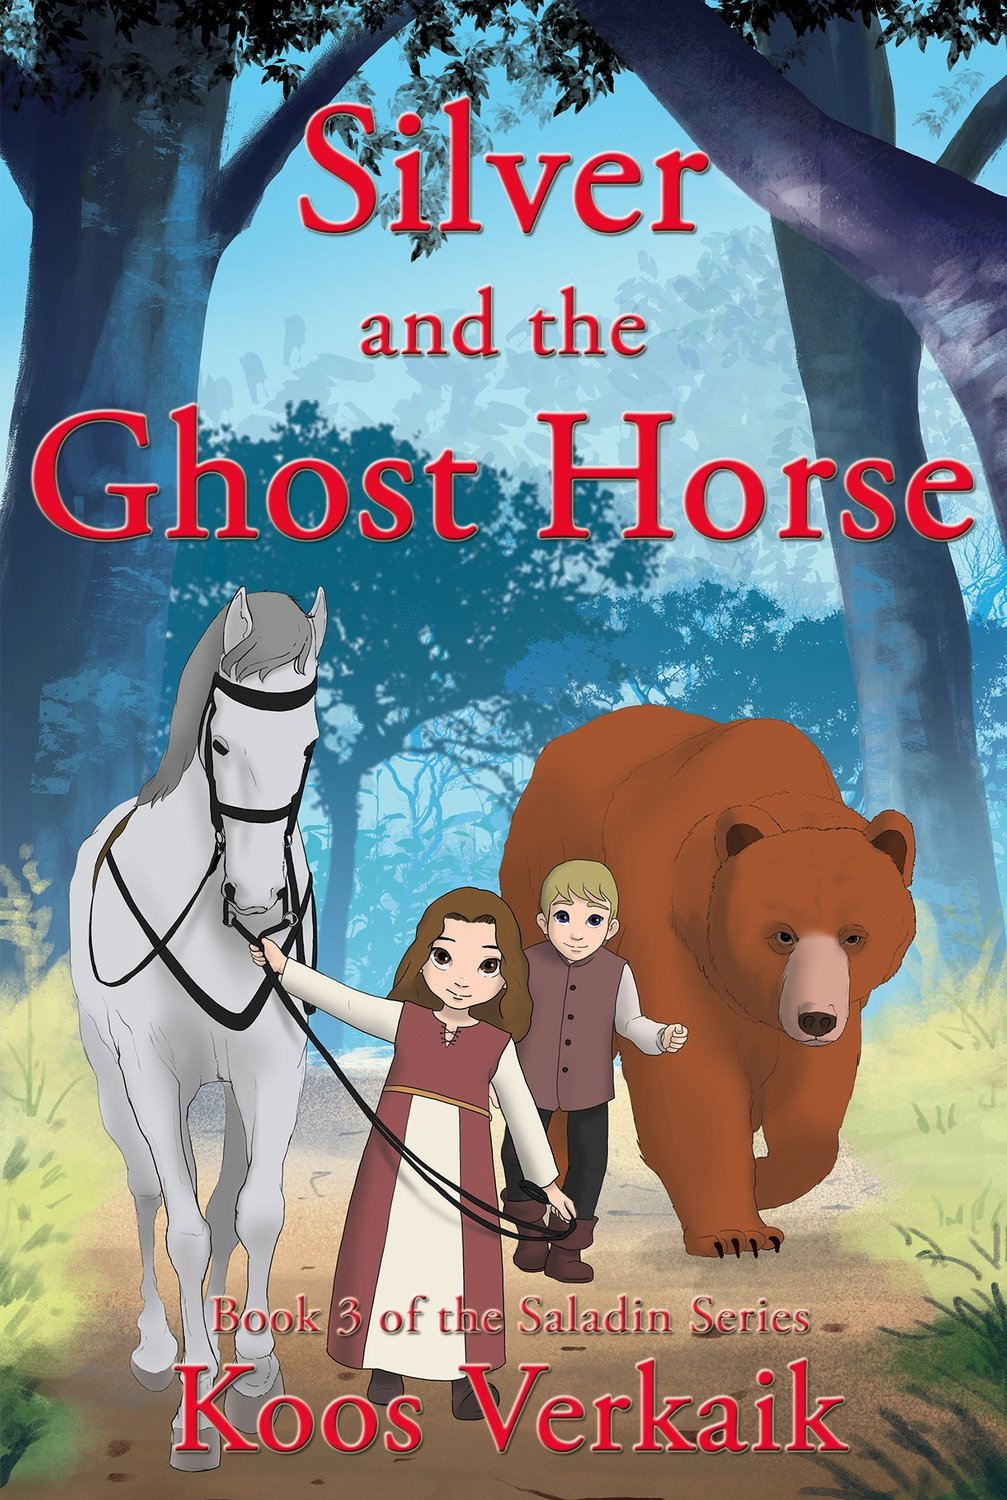 Silver and the Ghost Horse - Book 3 of the Saladin Series